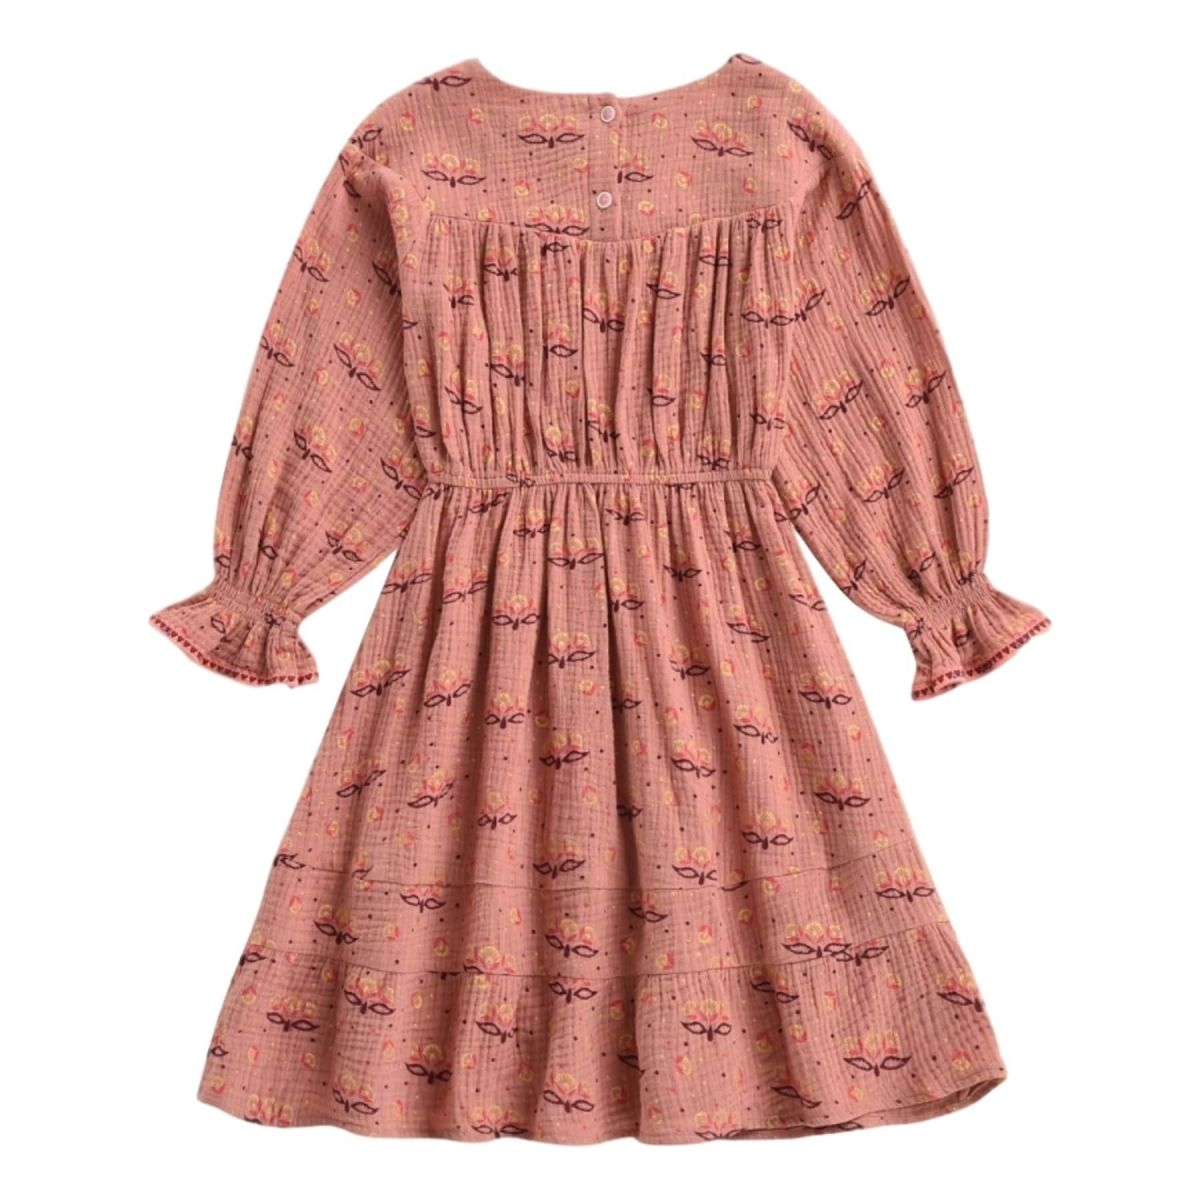 Louise Misha - Dress Lania Sienna Peru pink - 1